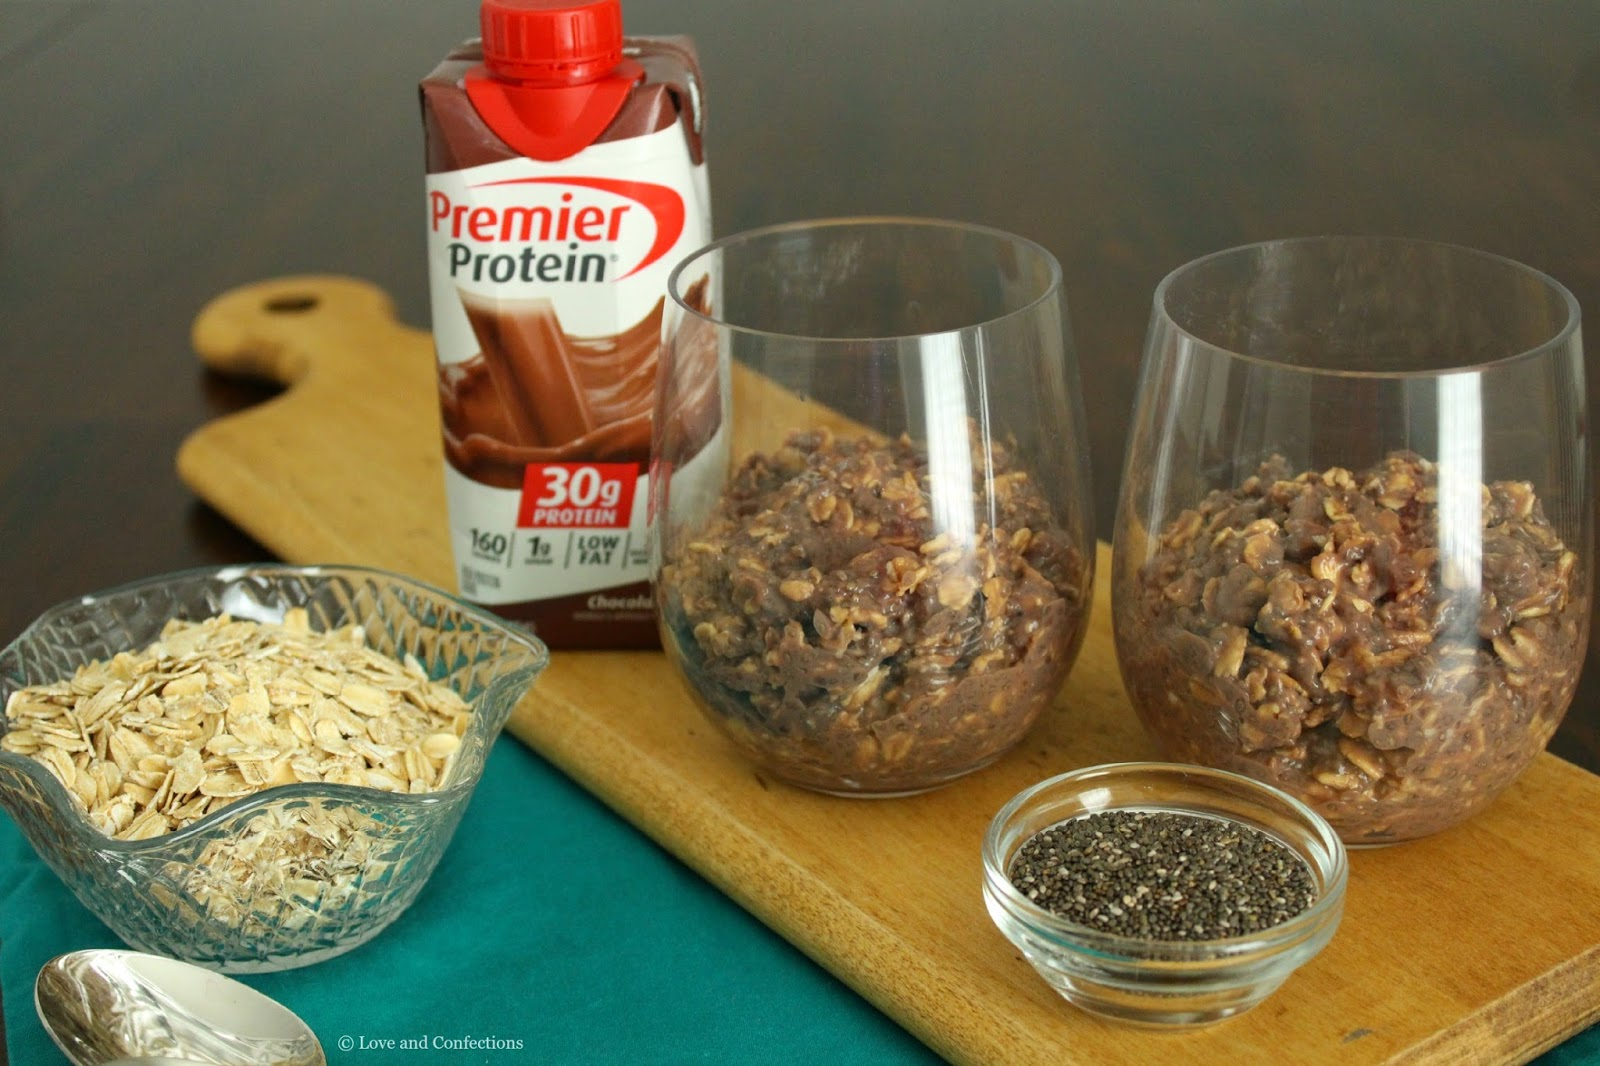 Overnight Chocolate Chia Protein Oatmeal from LoveandConfections.com #MyGoodEnergy #TeamPremier #ad